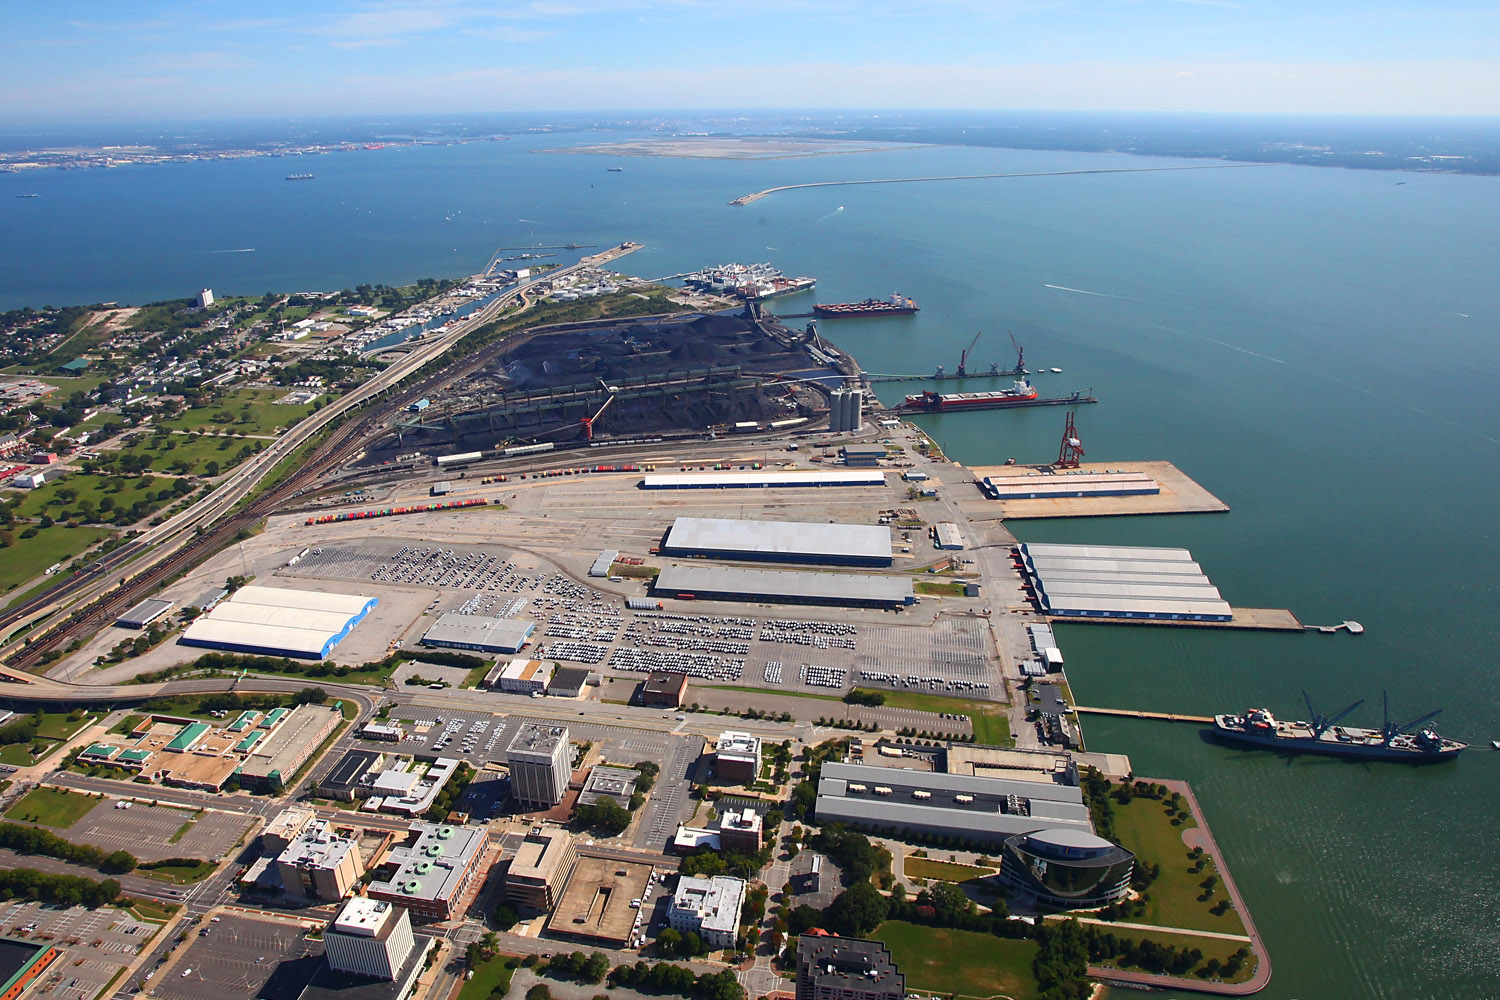 Abundant Waterfront Land and Infrastructure - Virginia's ports offer existing dock capacity and ample on-water marshaling areas. The Virginia coastline is geographically rich with waterfront properties and development or redevelopment opportunities.